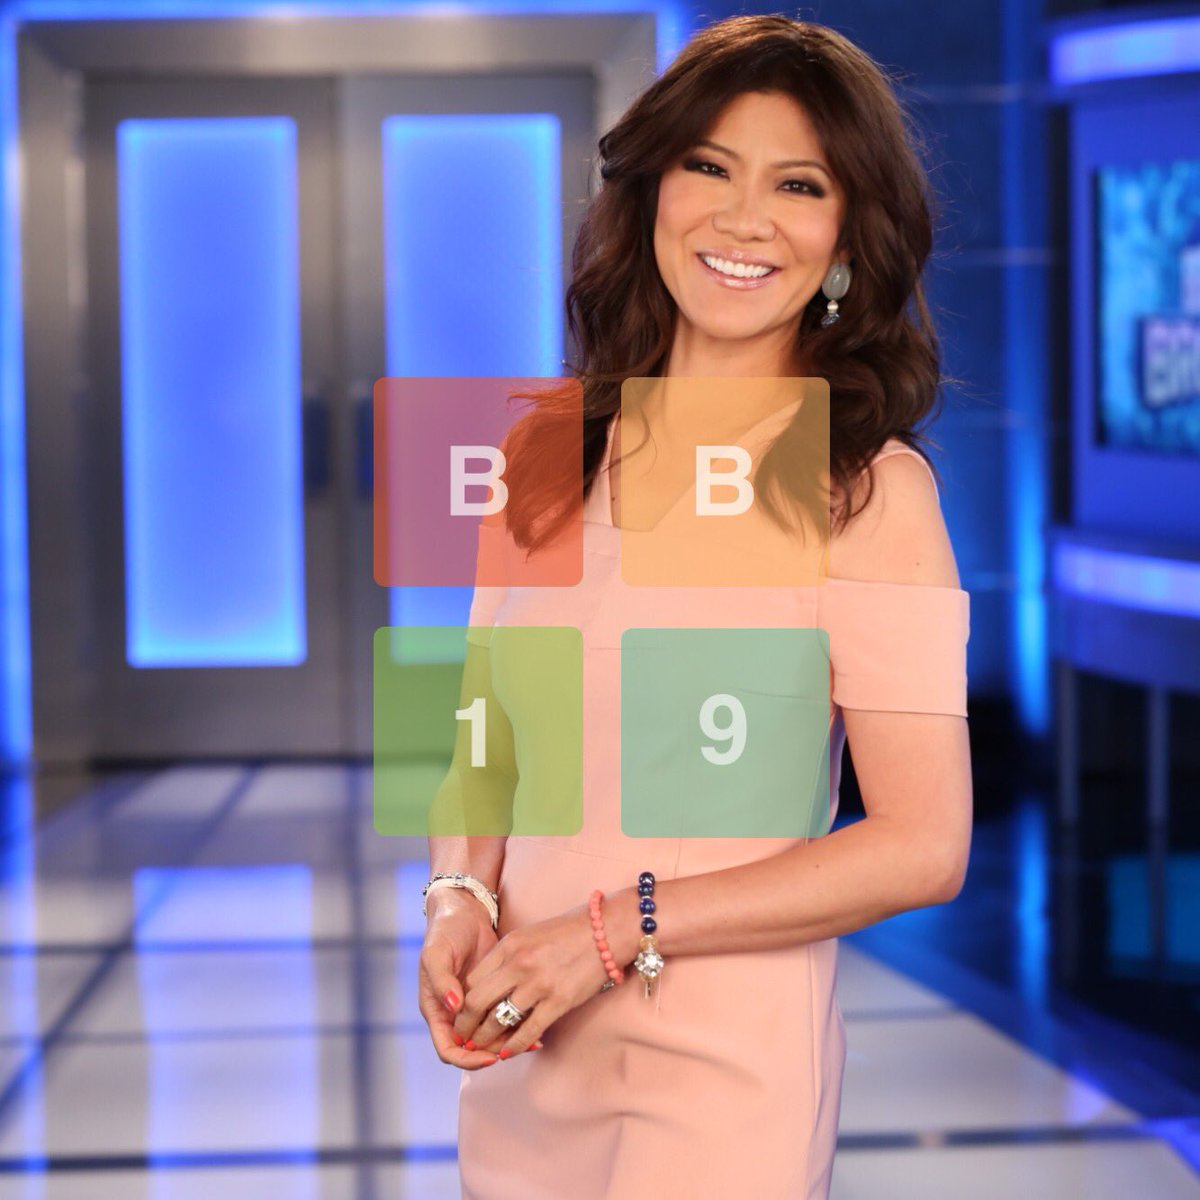 #BB19 is 2 months away!! RT if you're excited and counting down!! #BigBrother kicks off on June 28!! https://t.co/bR5HAmiMGA